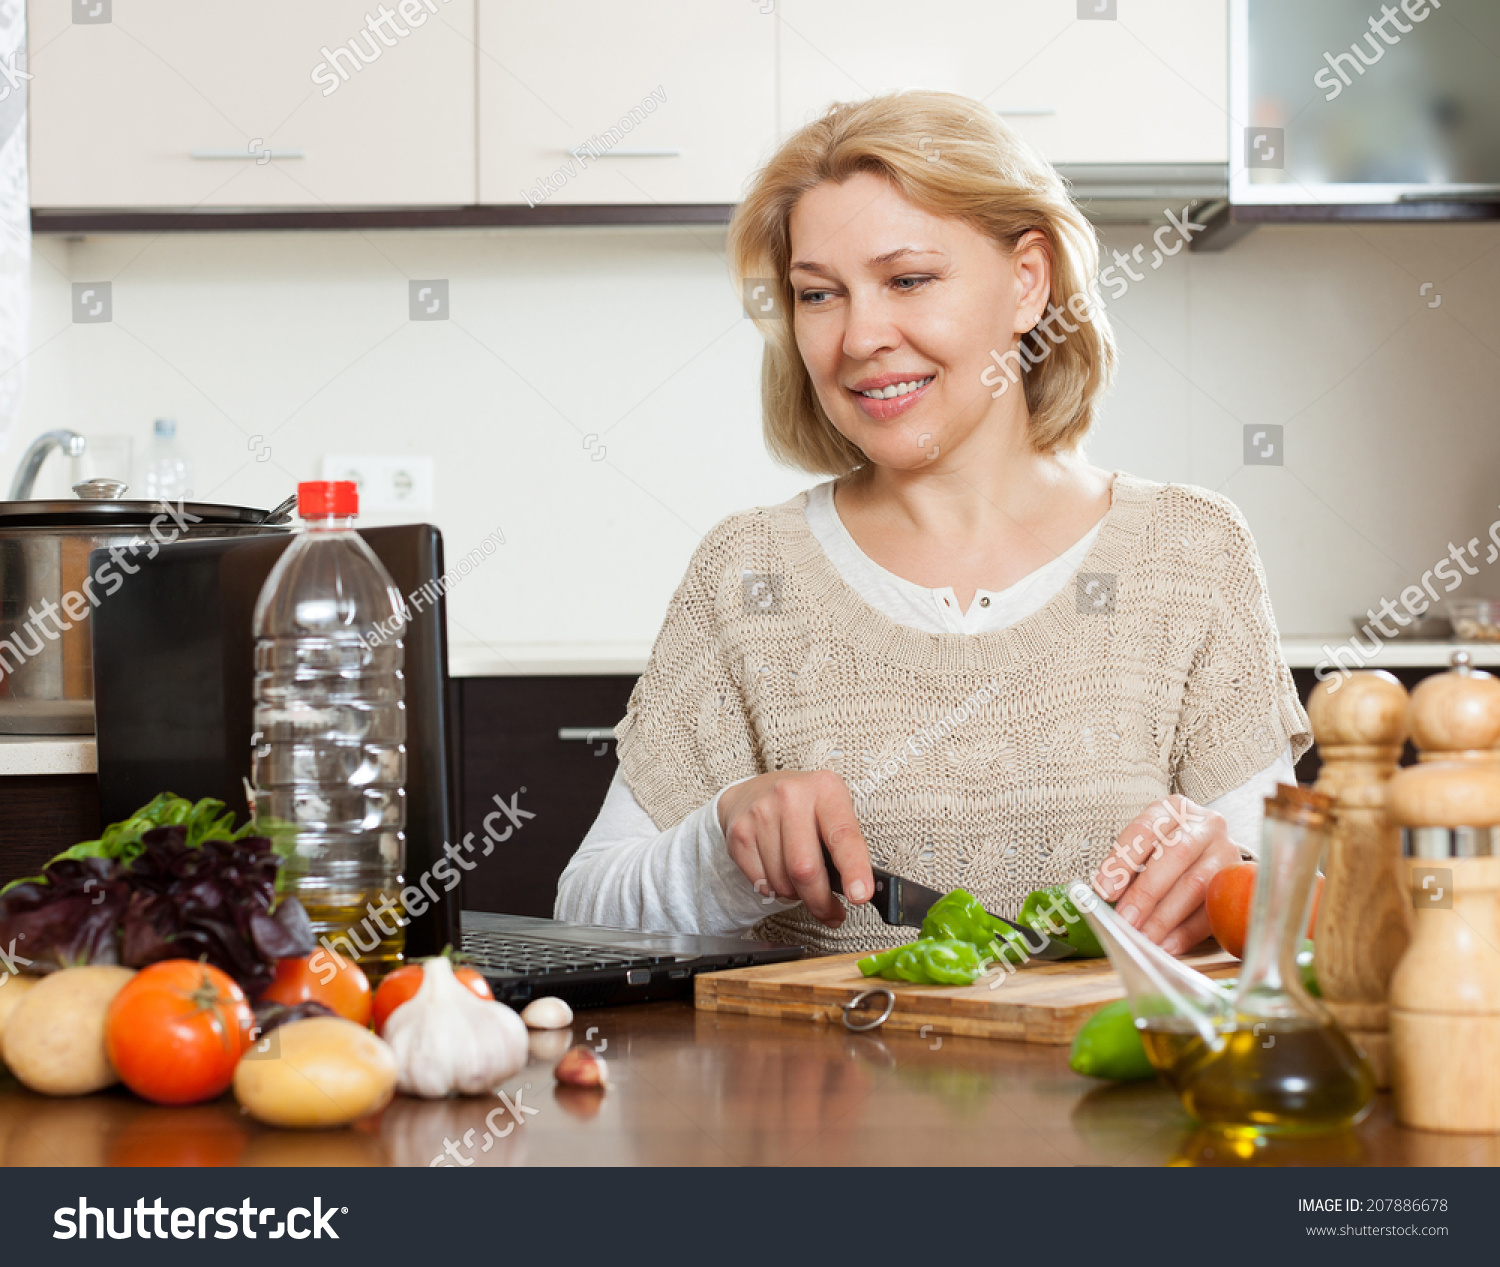 Woman Cooking Notebook Home Kitchen Stock Photo (Royalty Free ...